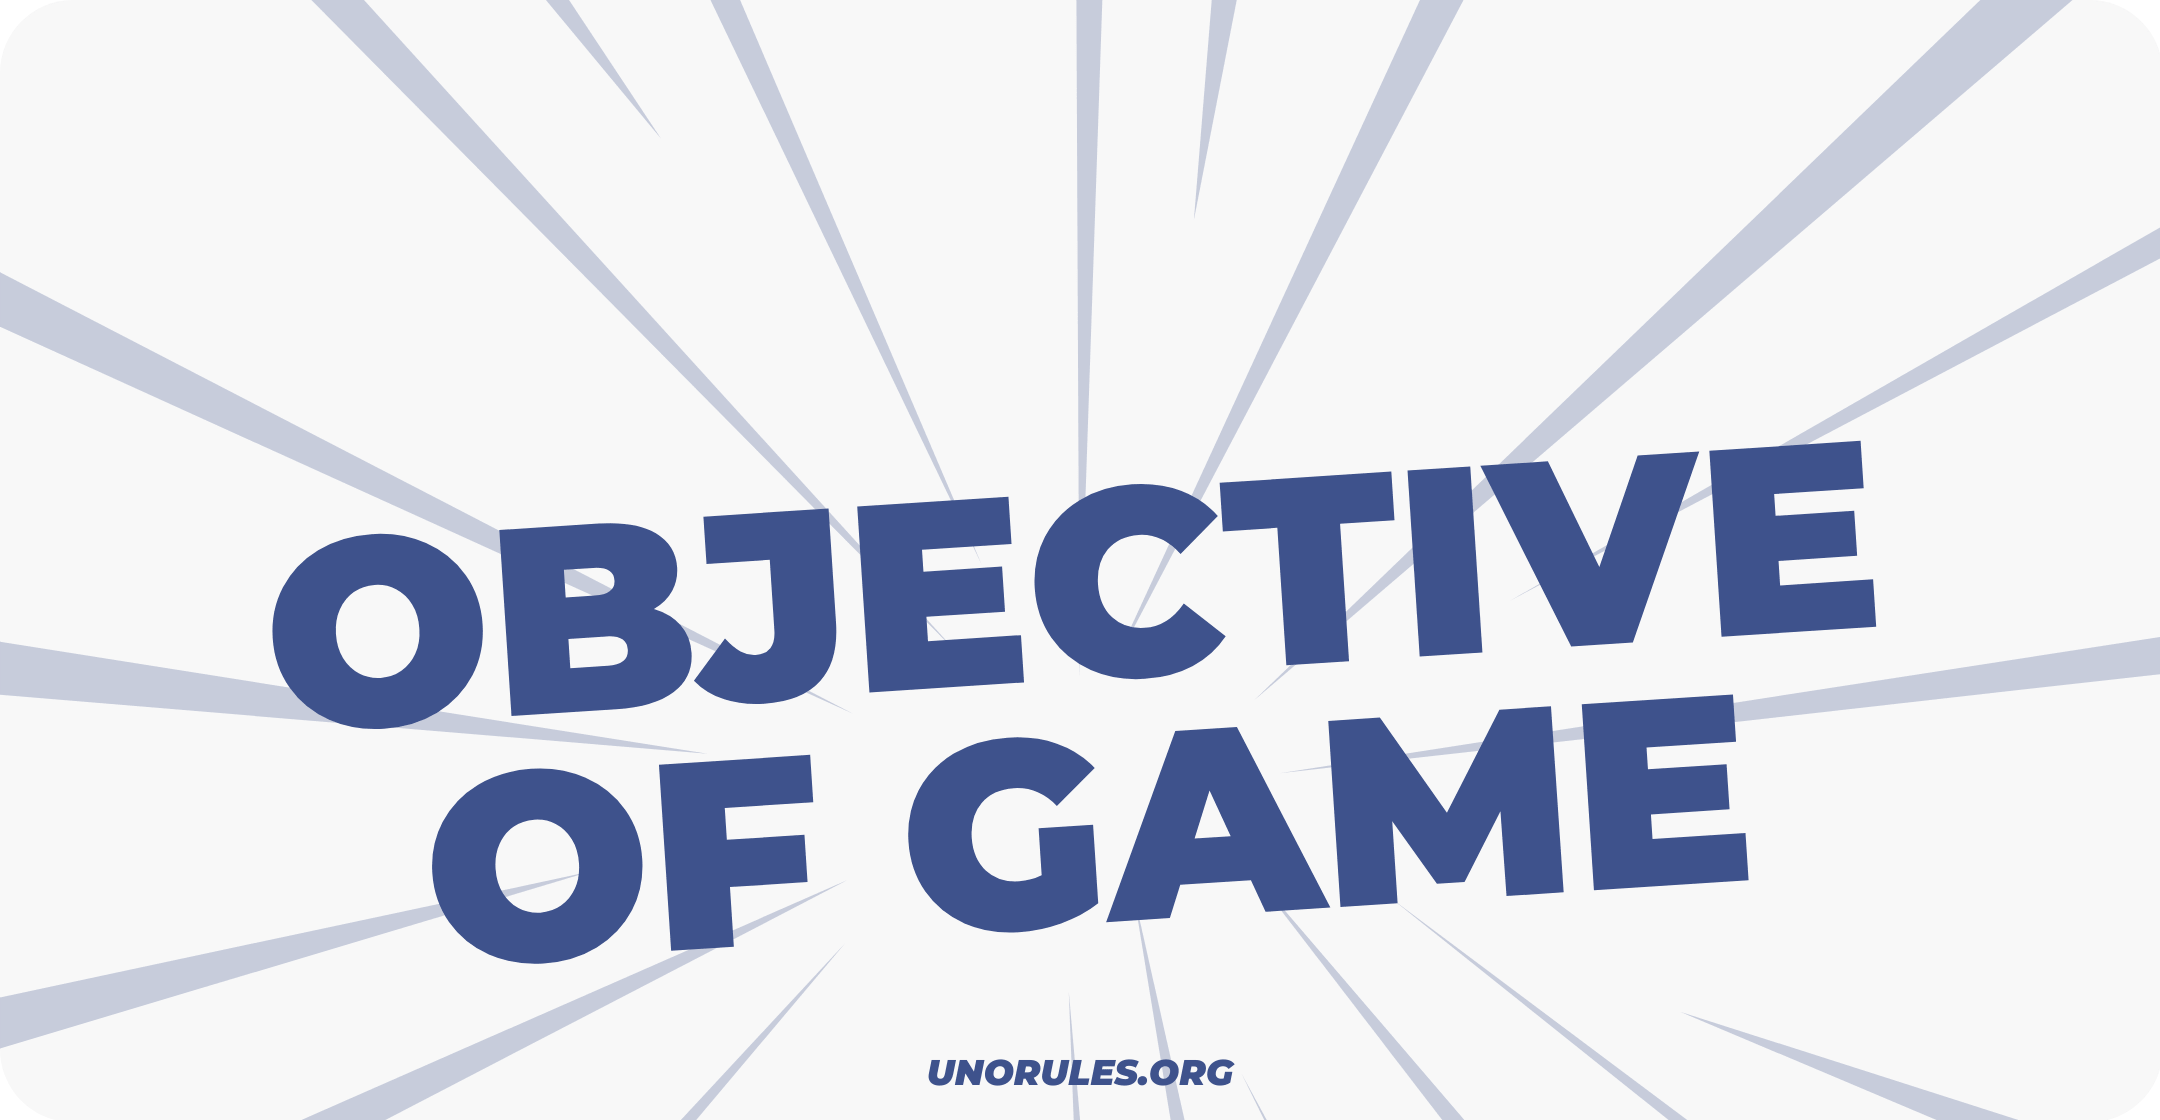 Objective of game